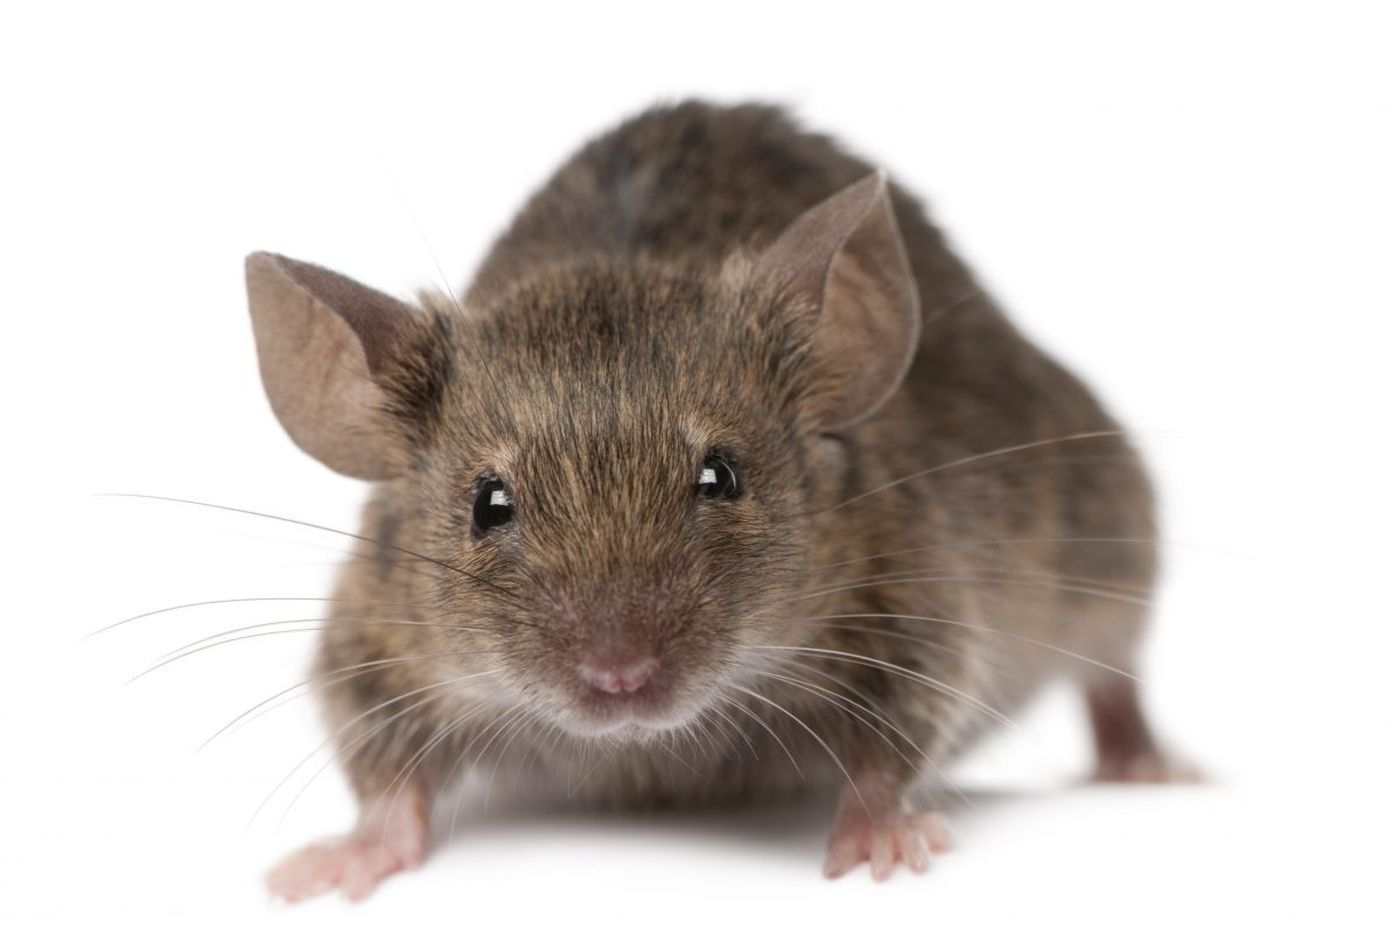 Comcast's latest thing: Helping Victor's wireless rodent traps send kill alerts